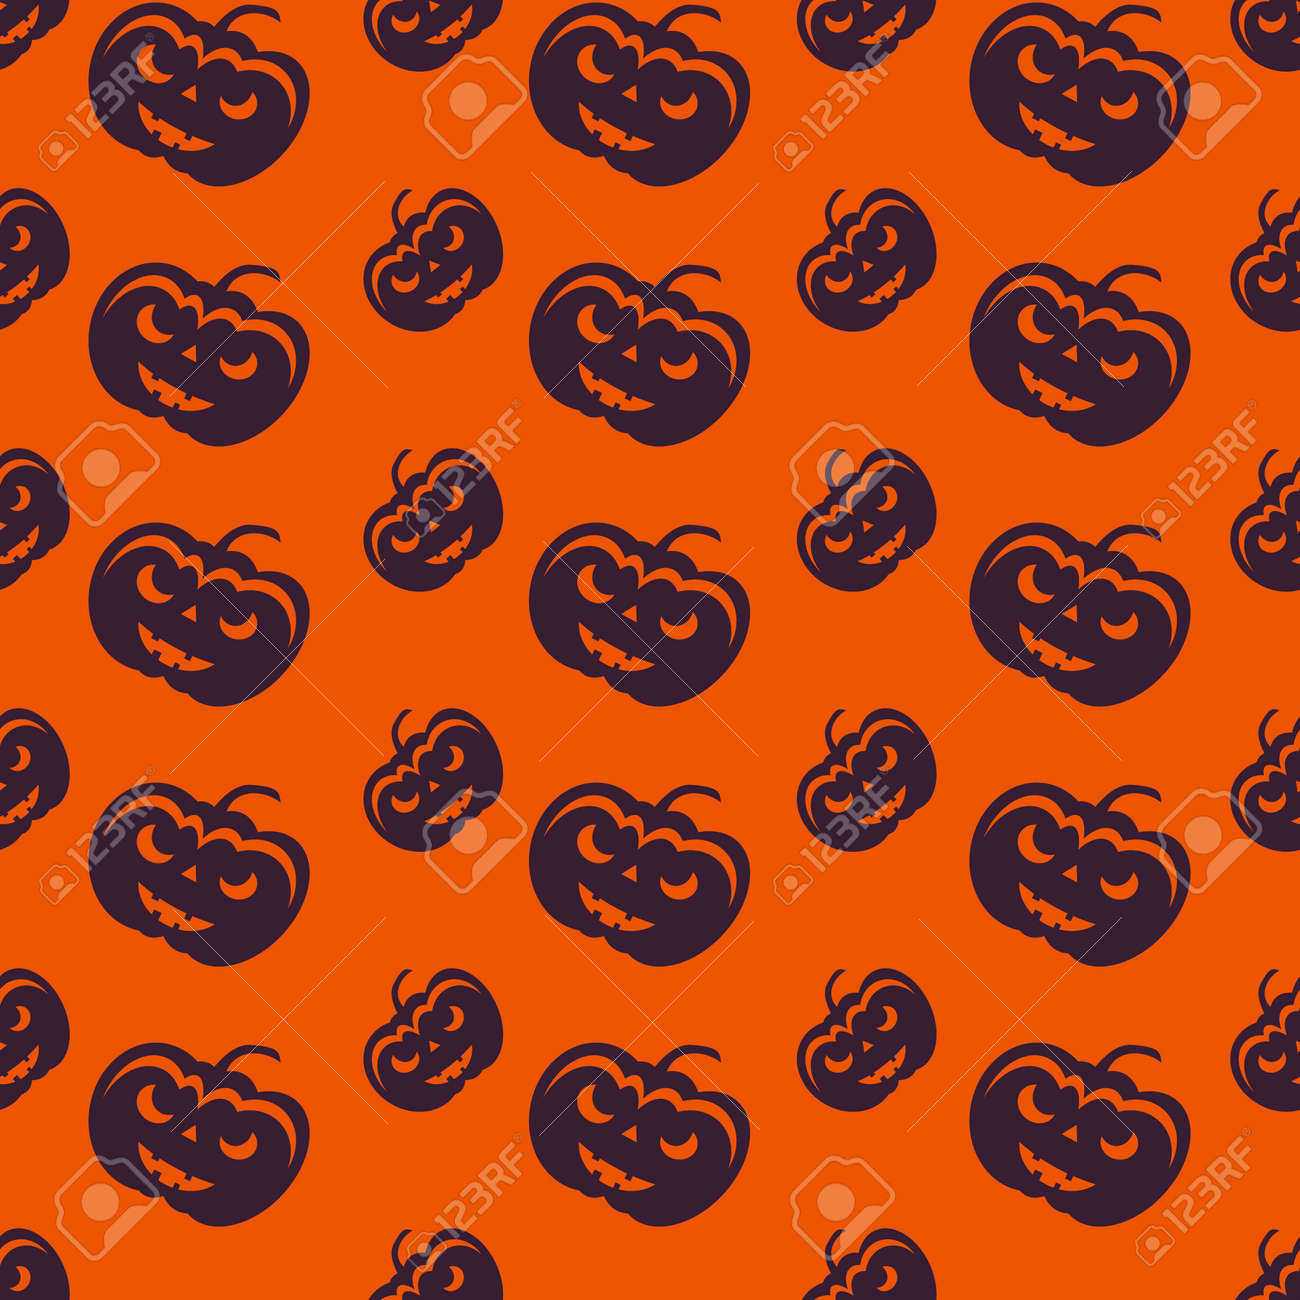 Happy Halloween Background. Seamless pattern. Collection of seamless patterns in the traditional holiday colors. - 44353648